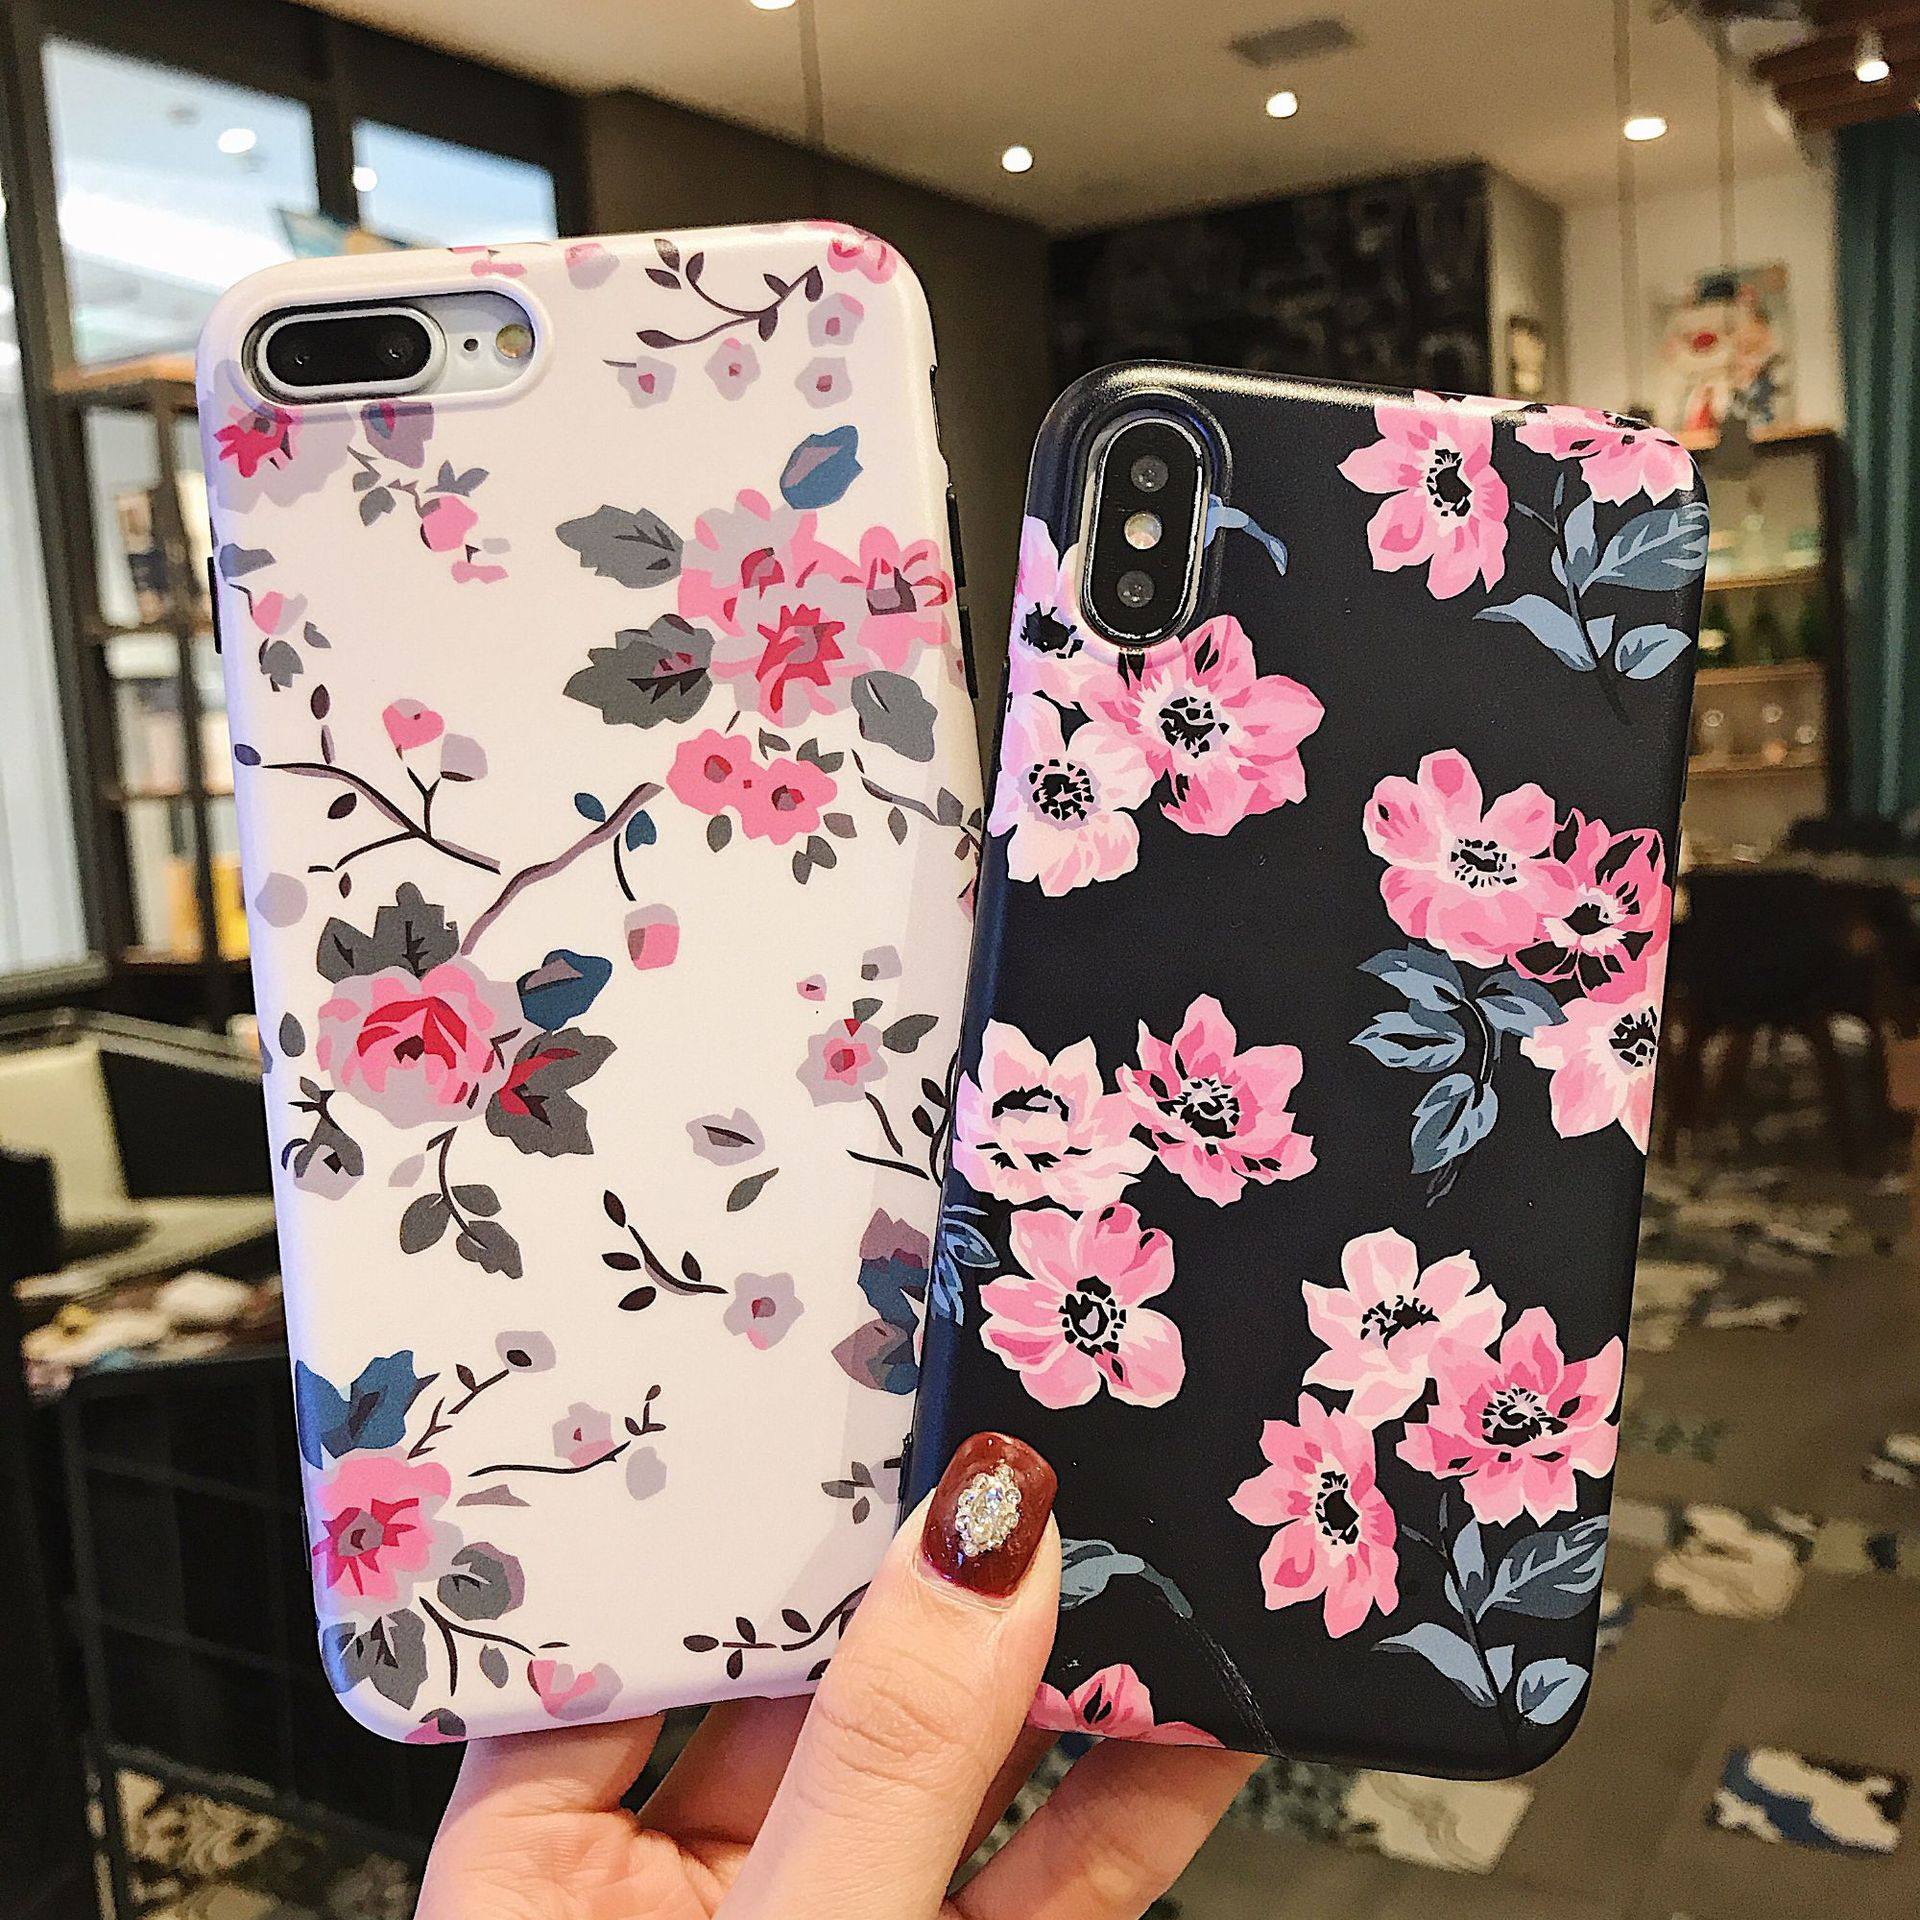 Classic Retro Flower Series Lmd Craft Anti-falling Edge TPU Soft Shell Mobile Phone Protective Cover For Iphone 6